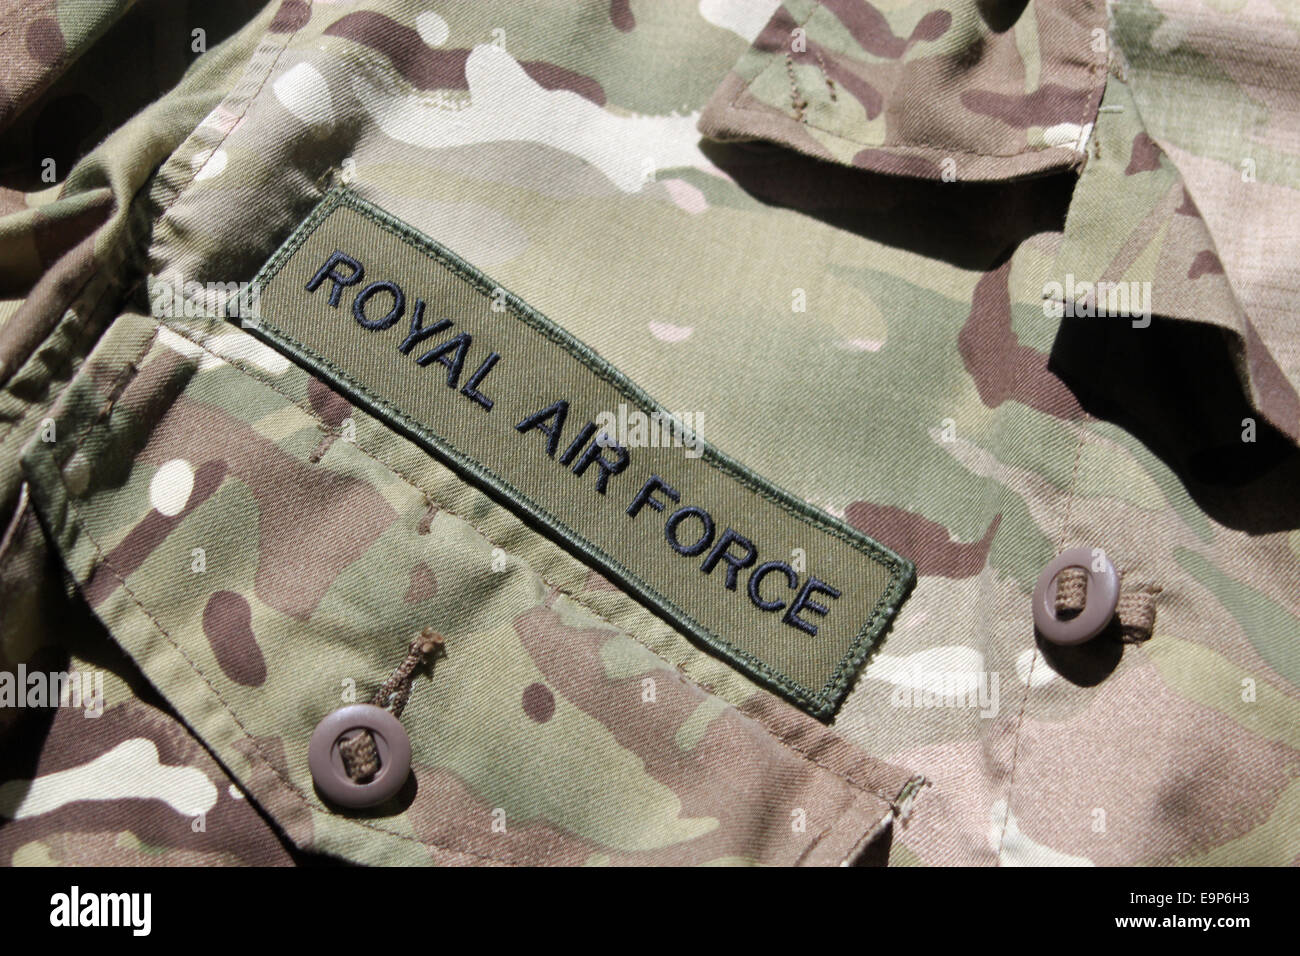 Close-up of RAF uniforme militaire Photo Stock